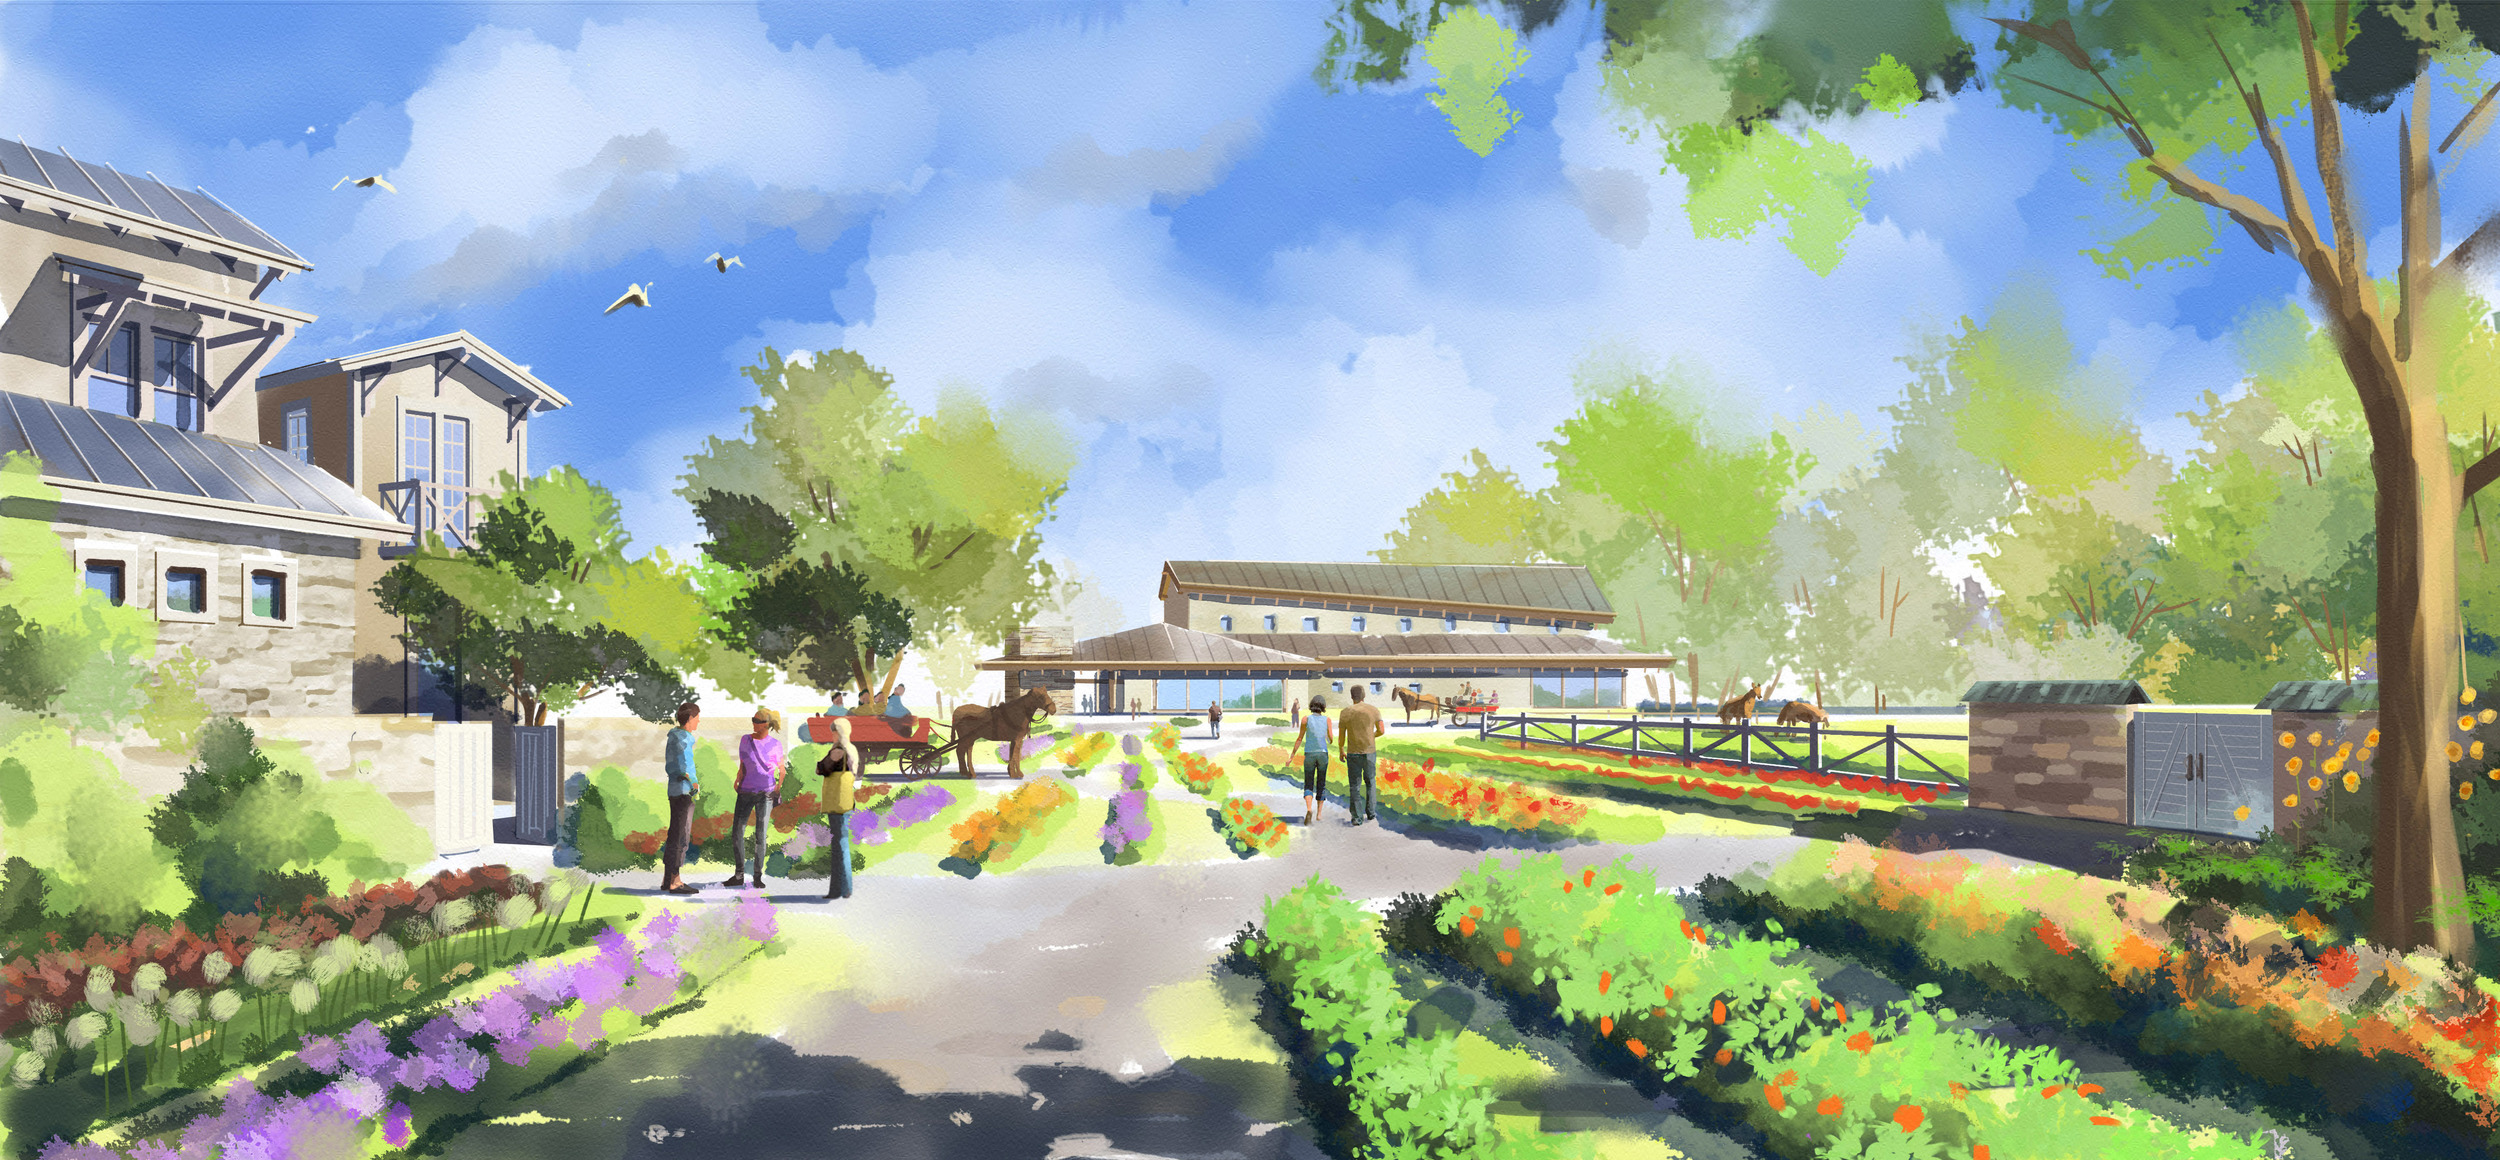 Digital Watercolor of Eco-Agricultural Resort in China